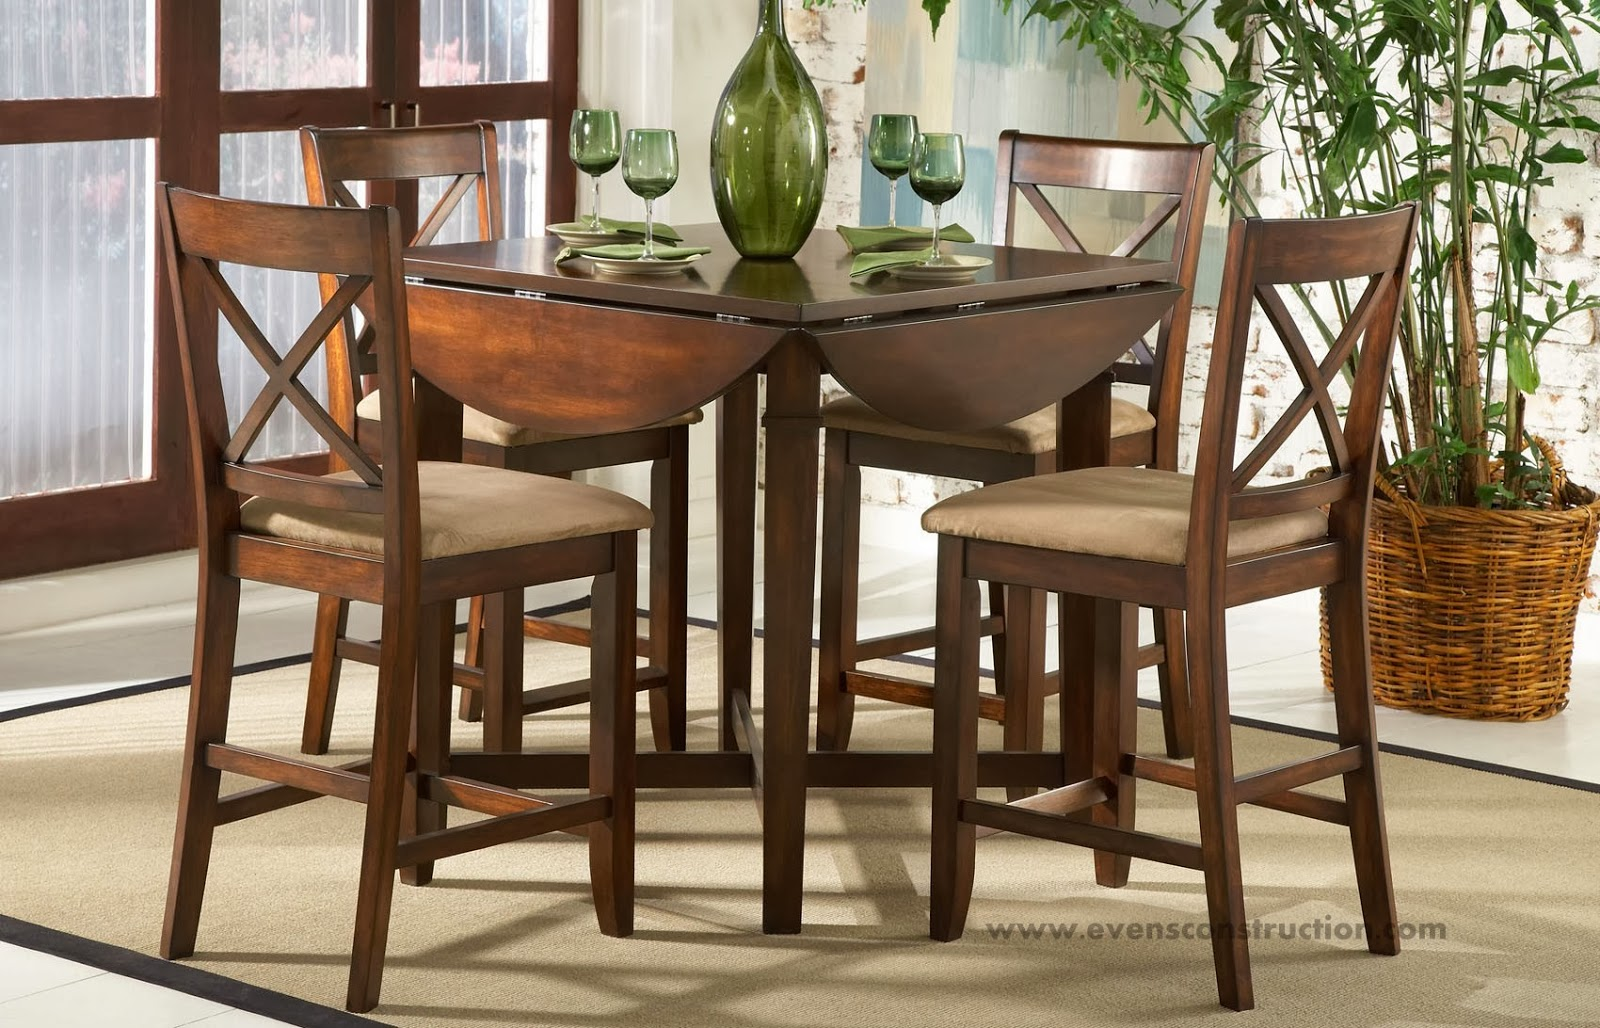 Evens Construction Pvt Ltd Wooden Dining Table Gallery